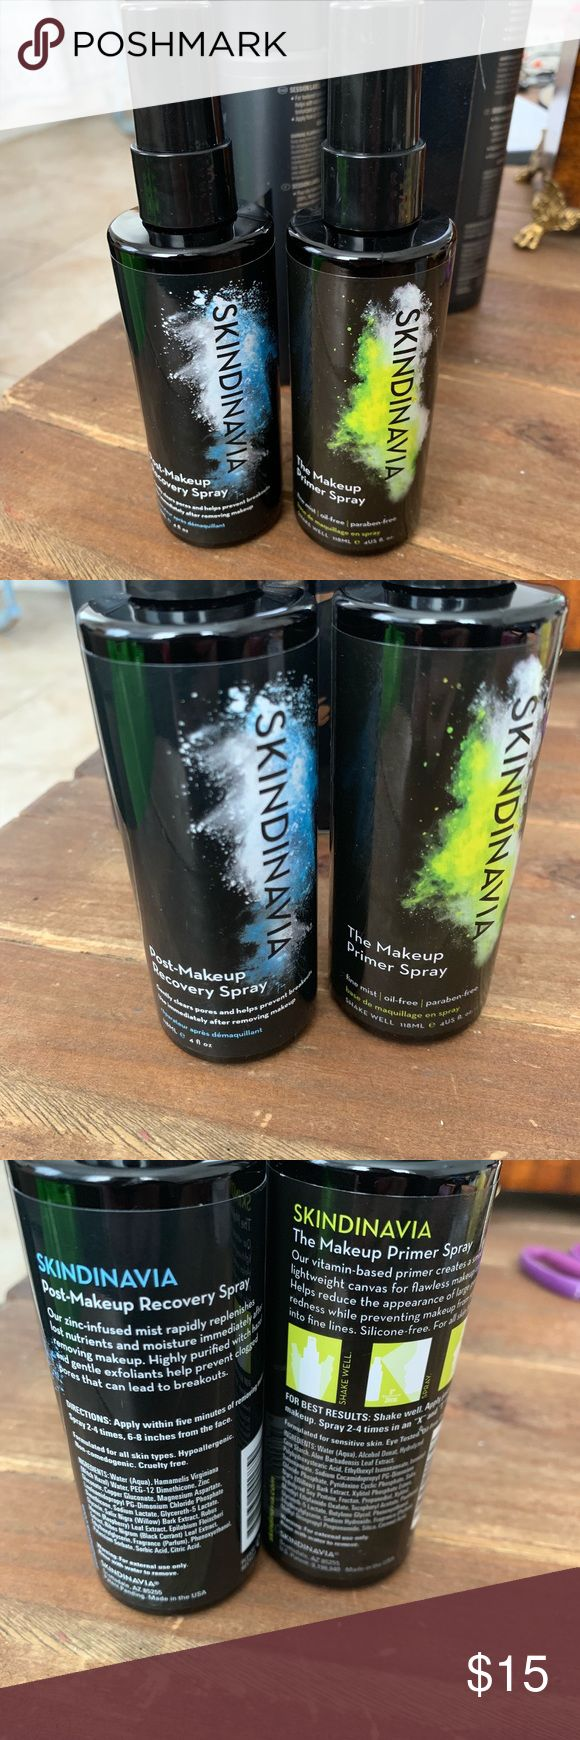 NEW Skindinavia makeup primer & post spray Makeup primer